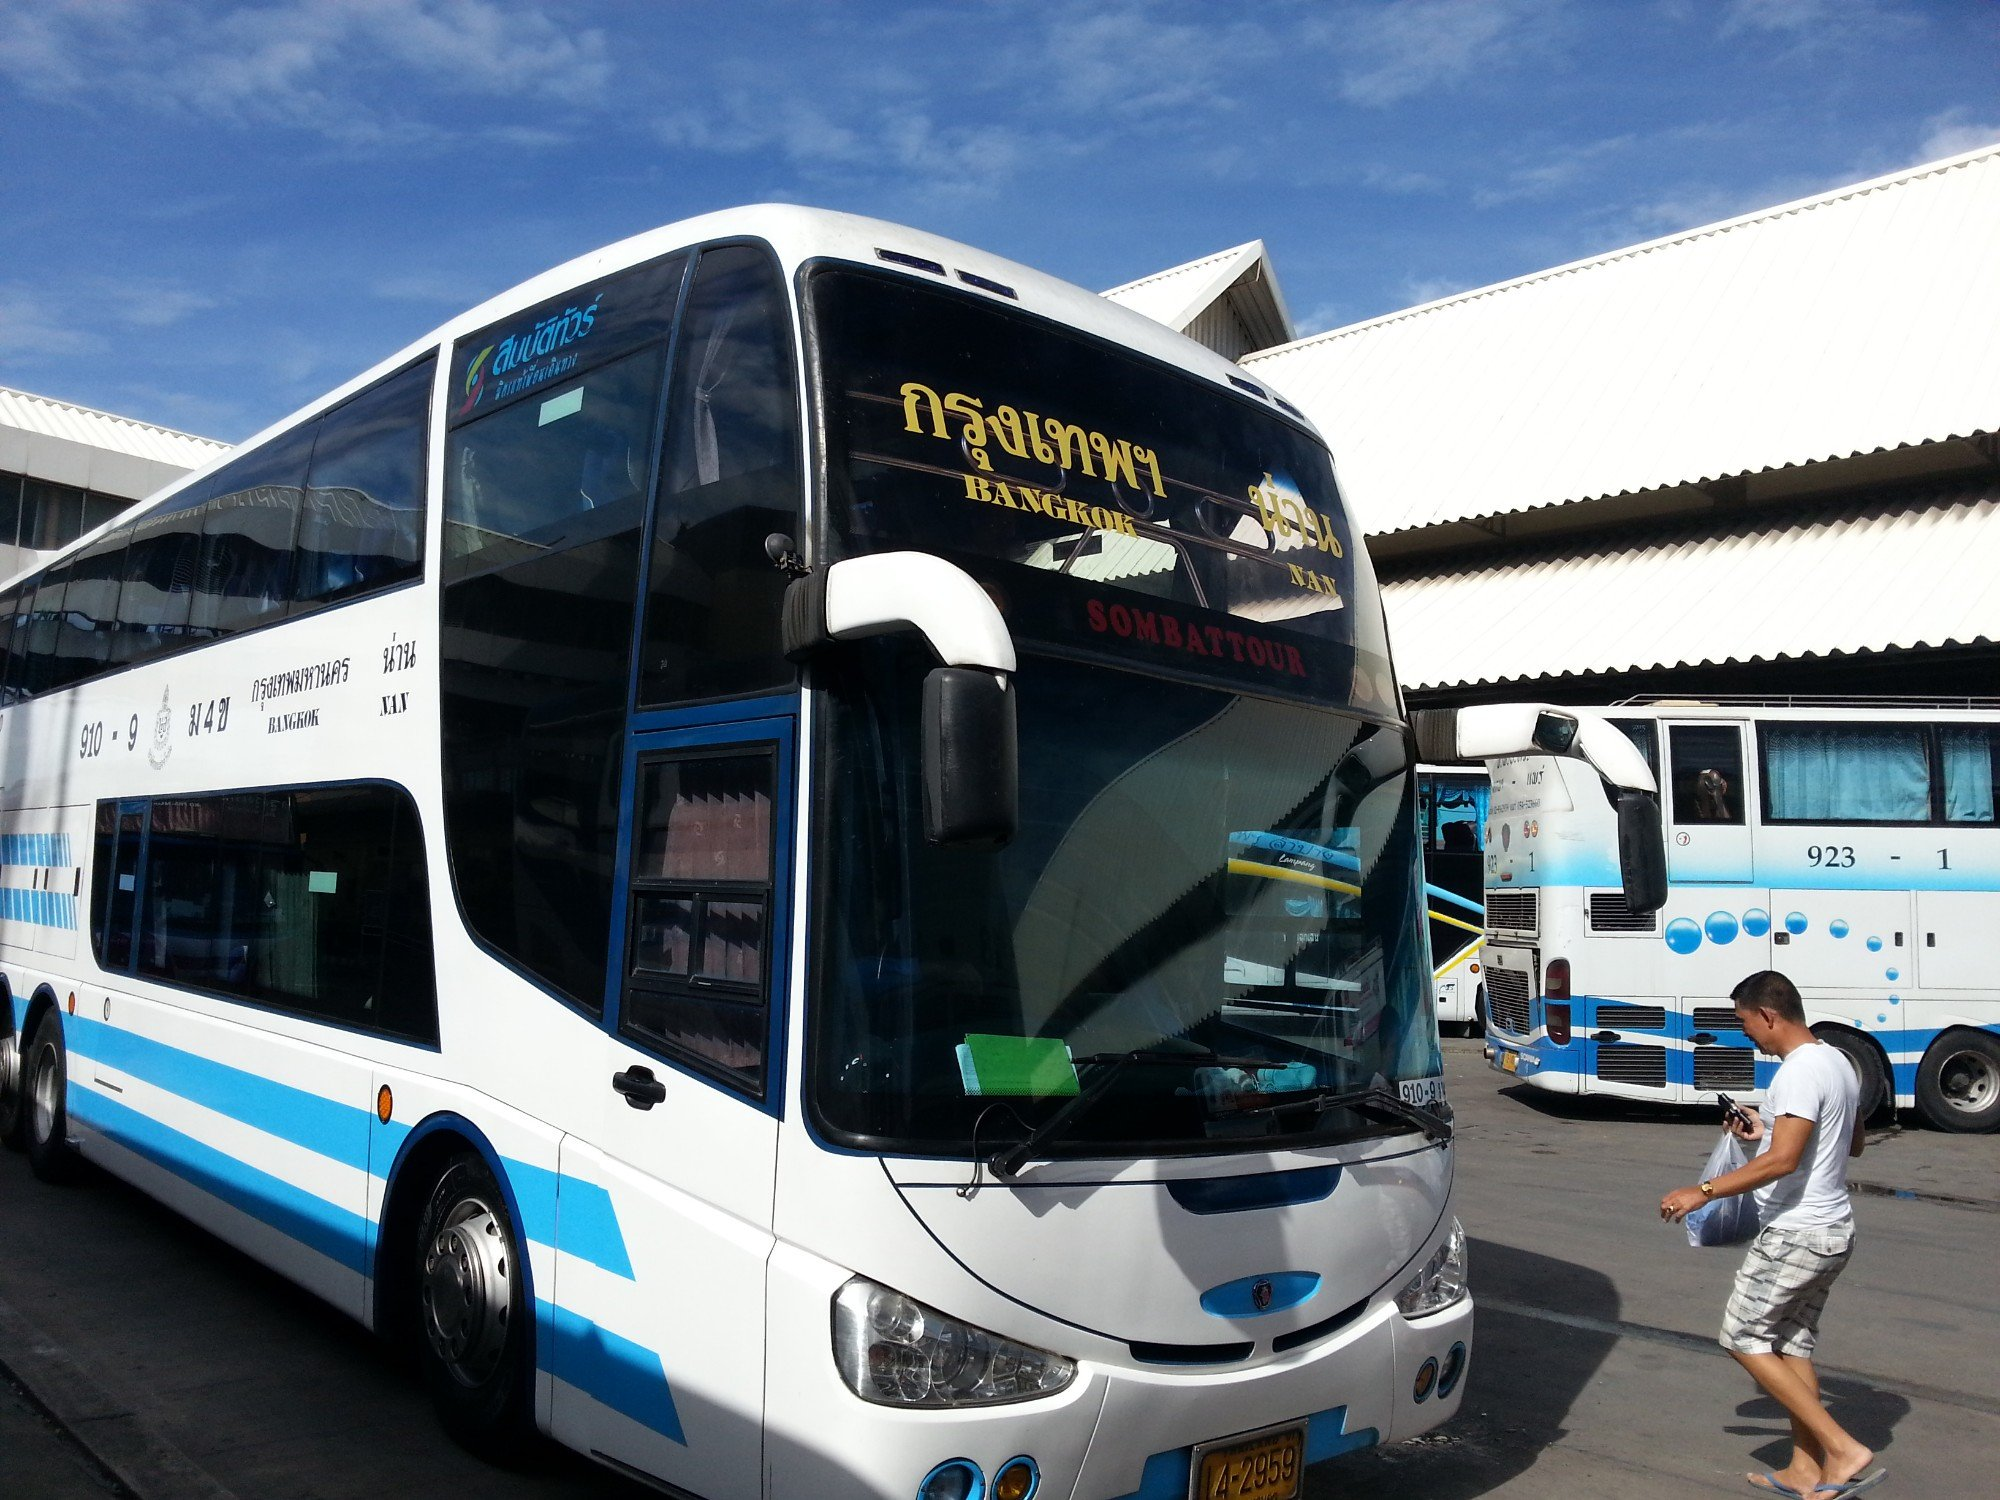 Sueska Tour bus services operate on the Chiang Mai to Nong Bus Lamphu route